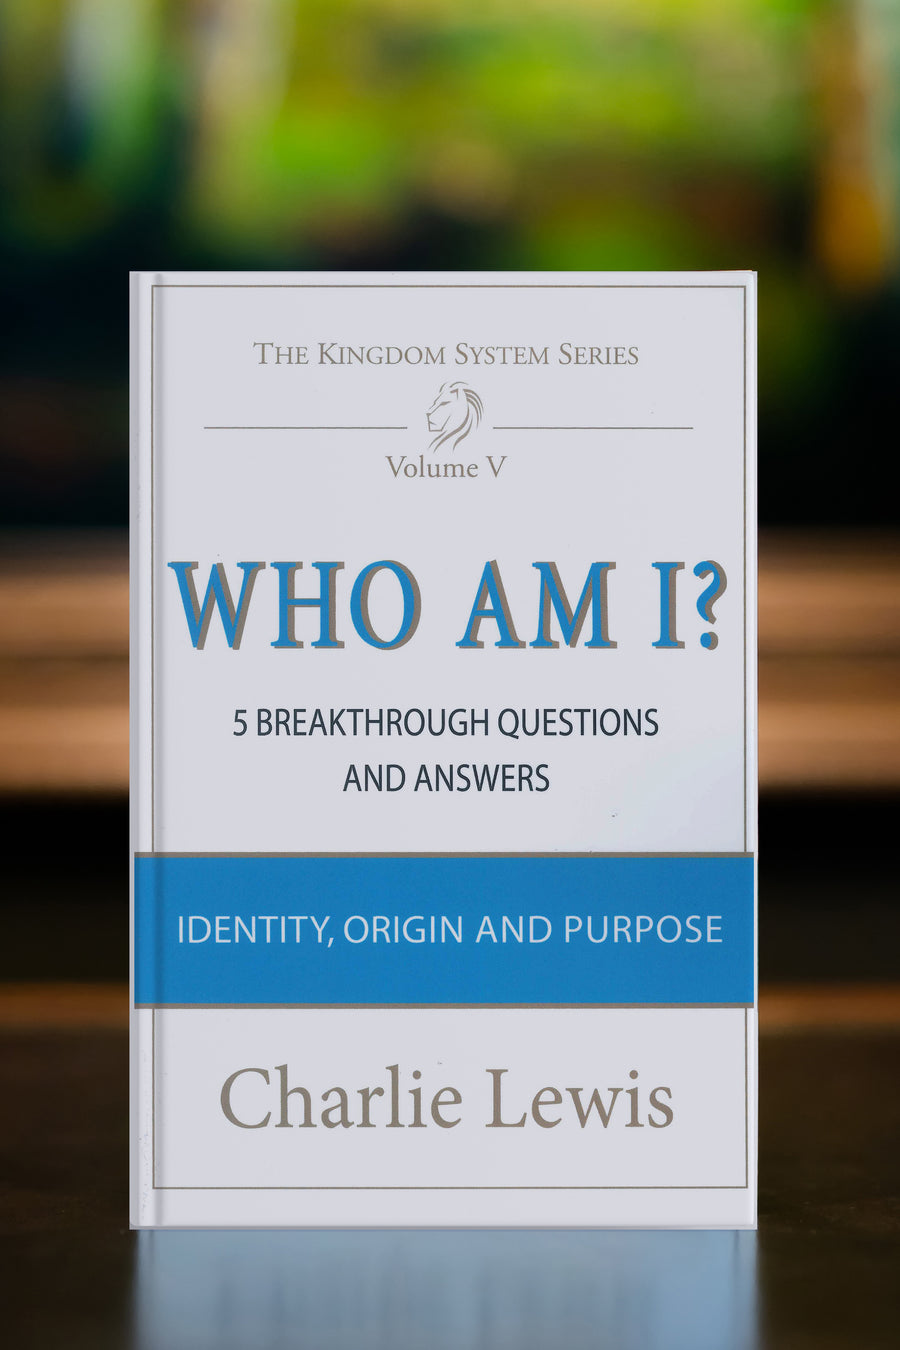 Who Am I? 5 Breakthrough Questions and Answers by Charlie Lewis